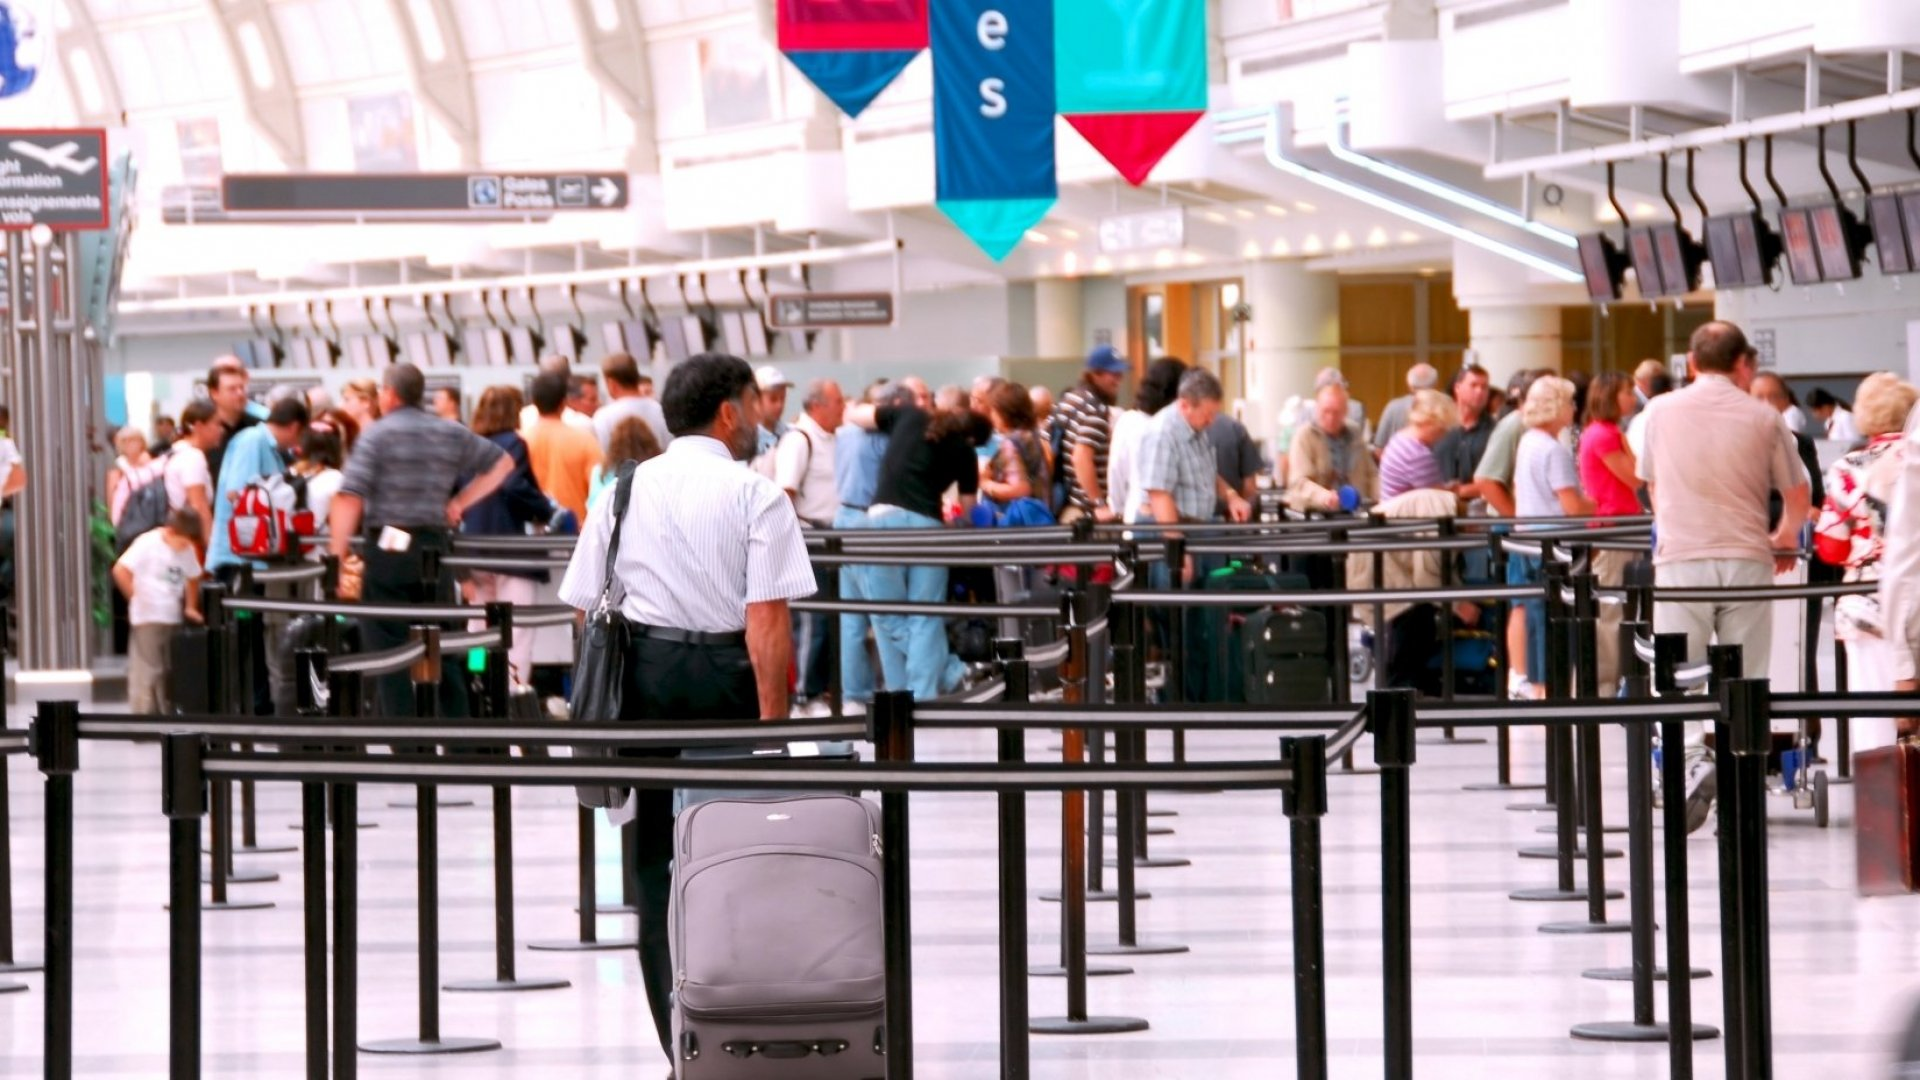 Airport Crowds Are Bigger Than Ever This Summer. Here's What You Can Do About It